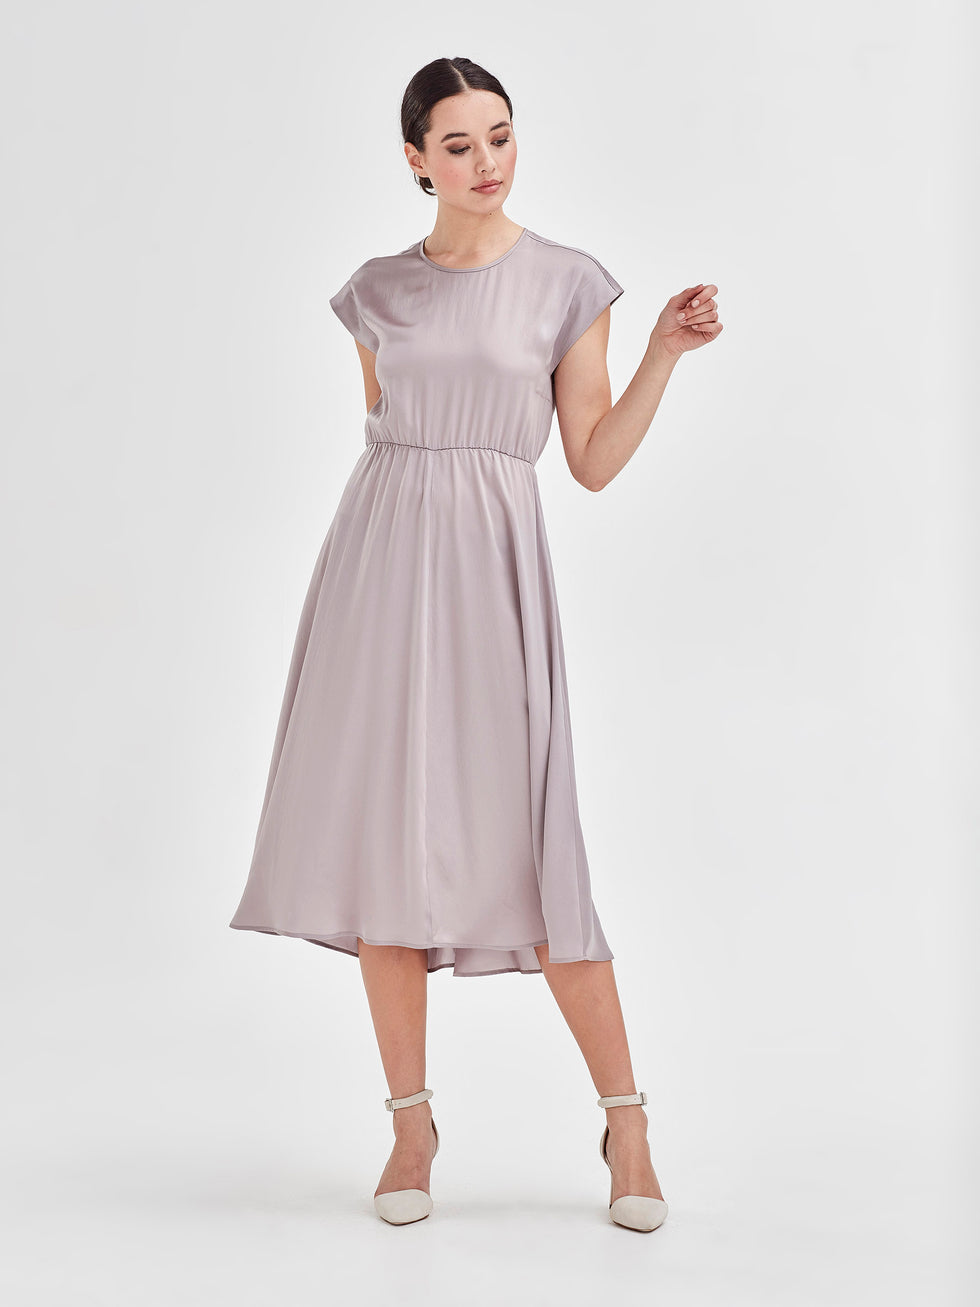 Ella Dress (Satin Triacetate) Golden 2